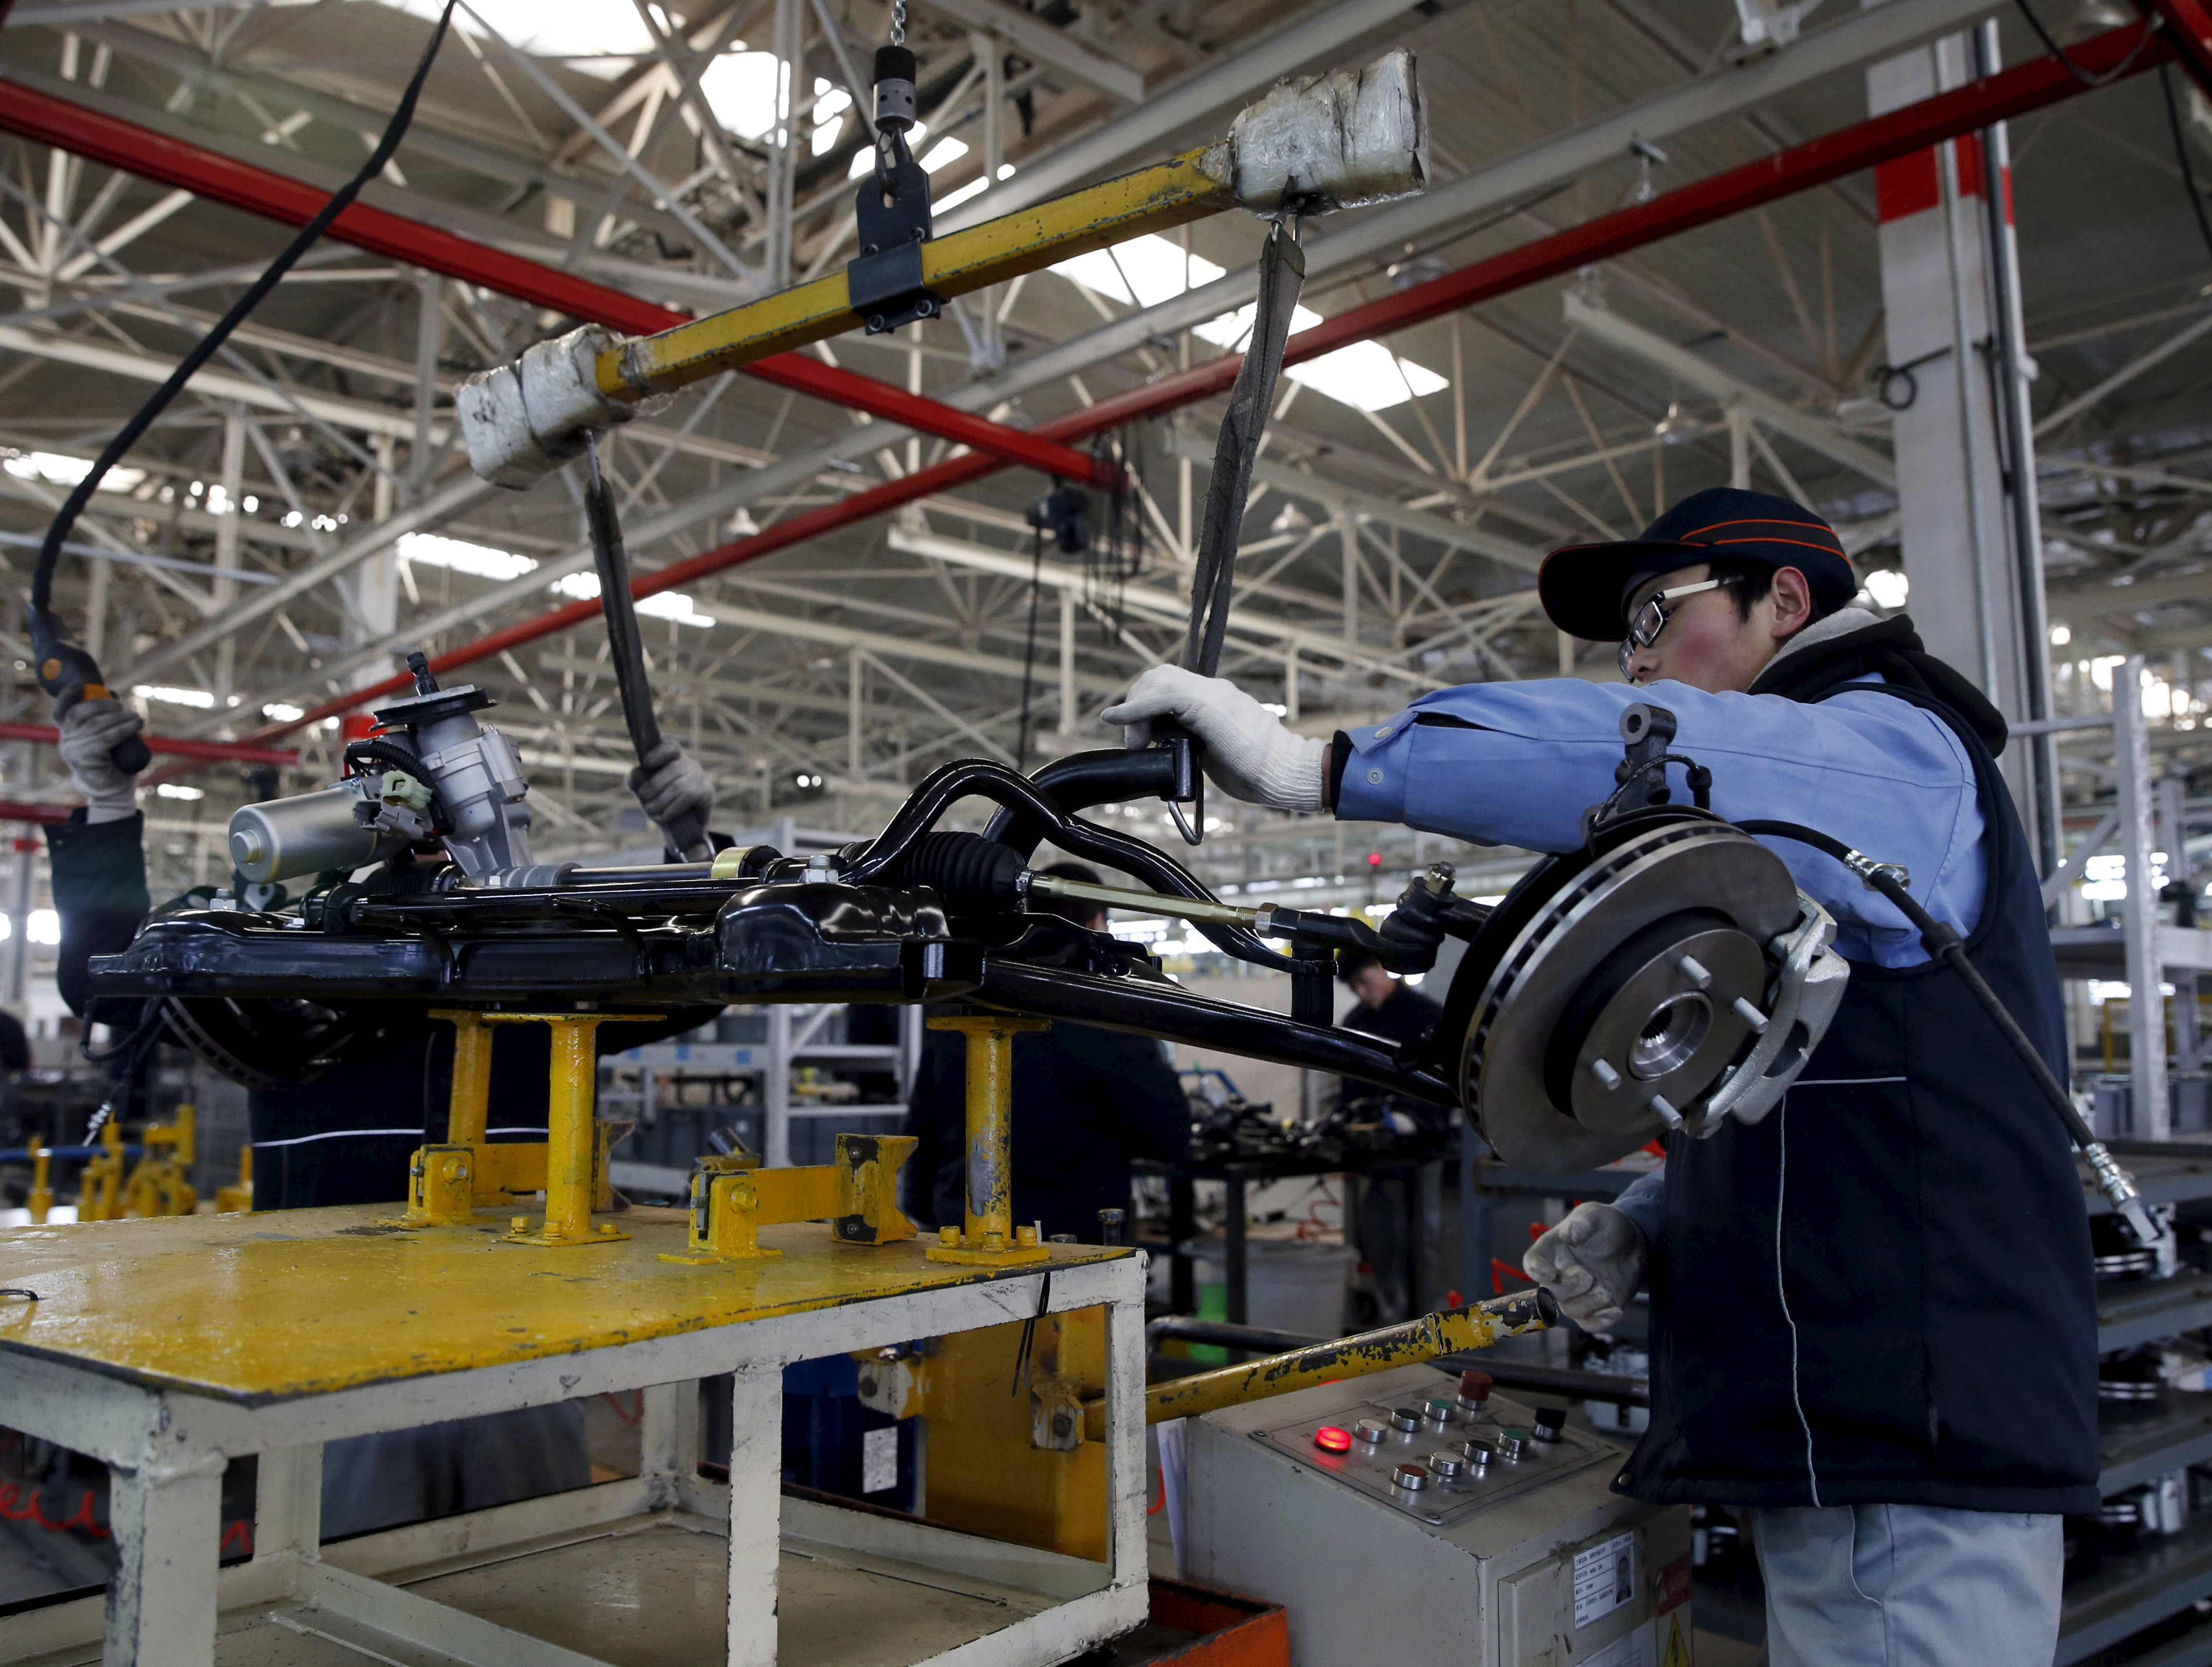 An employee works on an assembly line producing electronic cars at a factory of Beijing Electric Vehicle, funded by BAIC Group, in Beijing, China, Jan. 18, 2016.